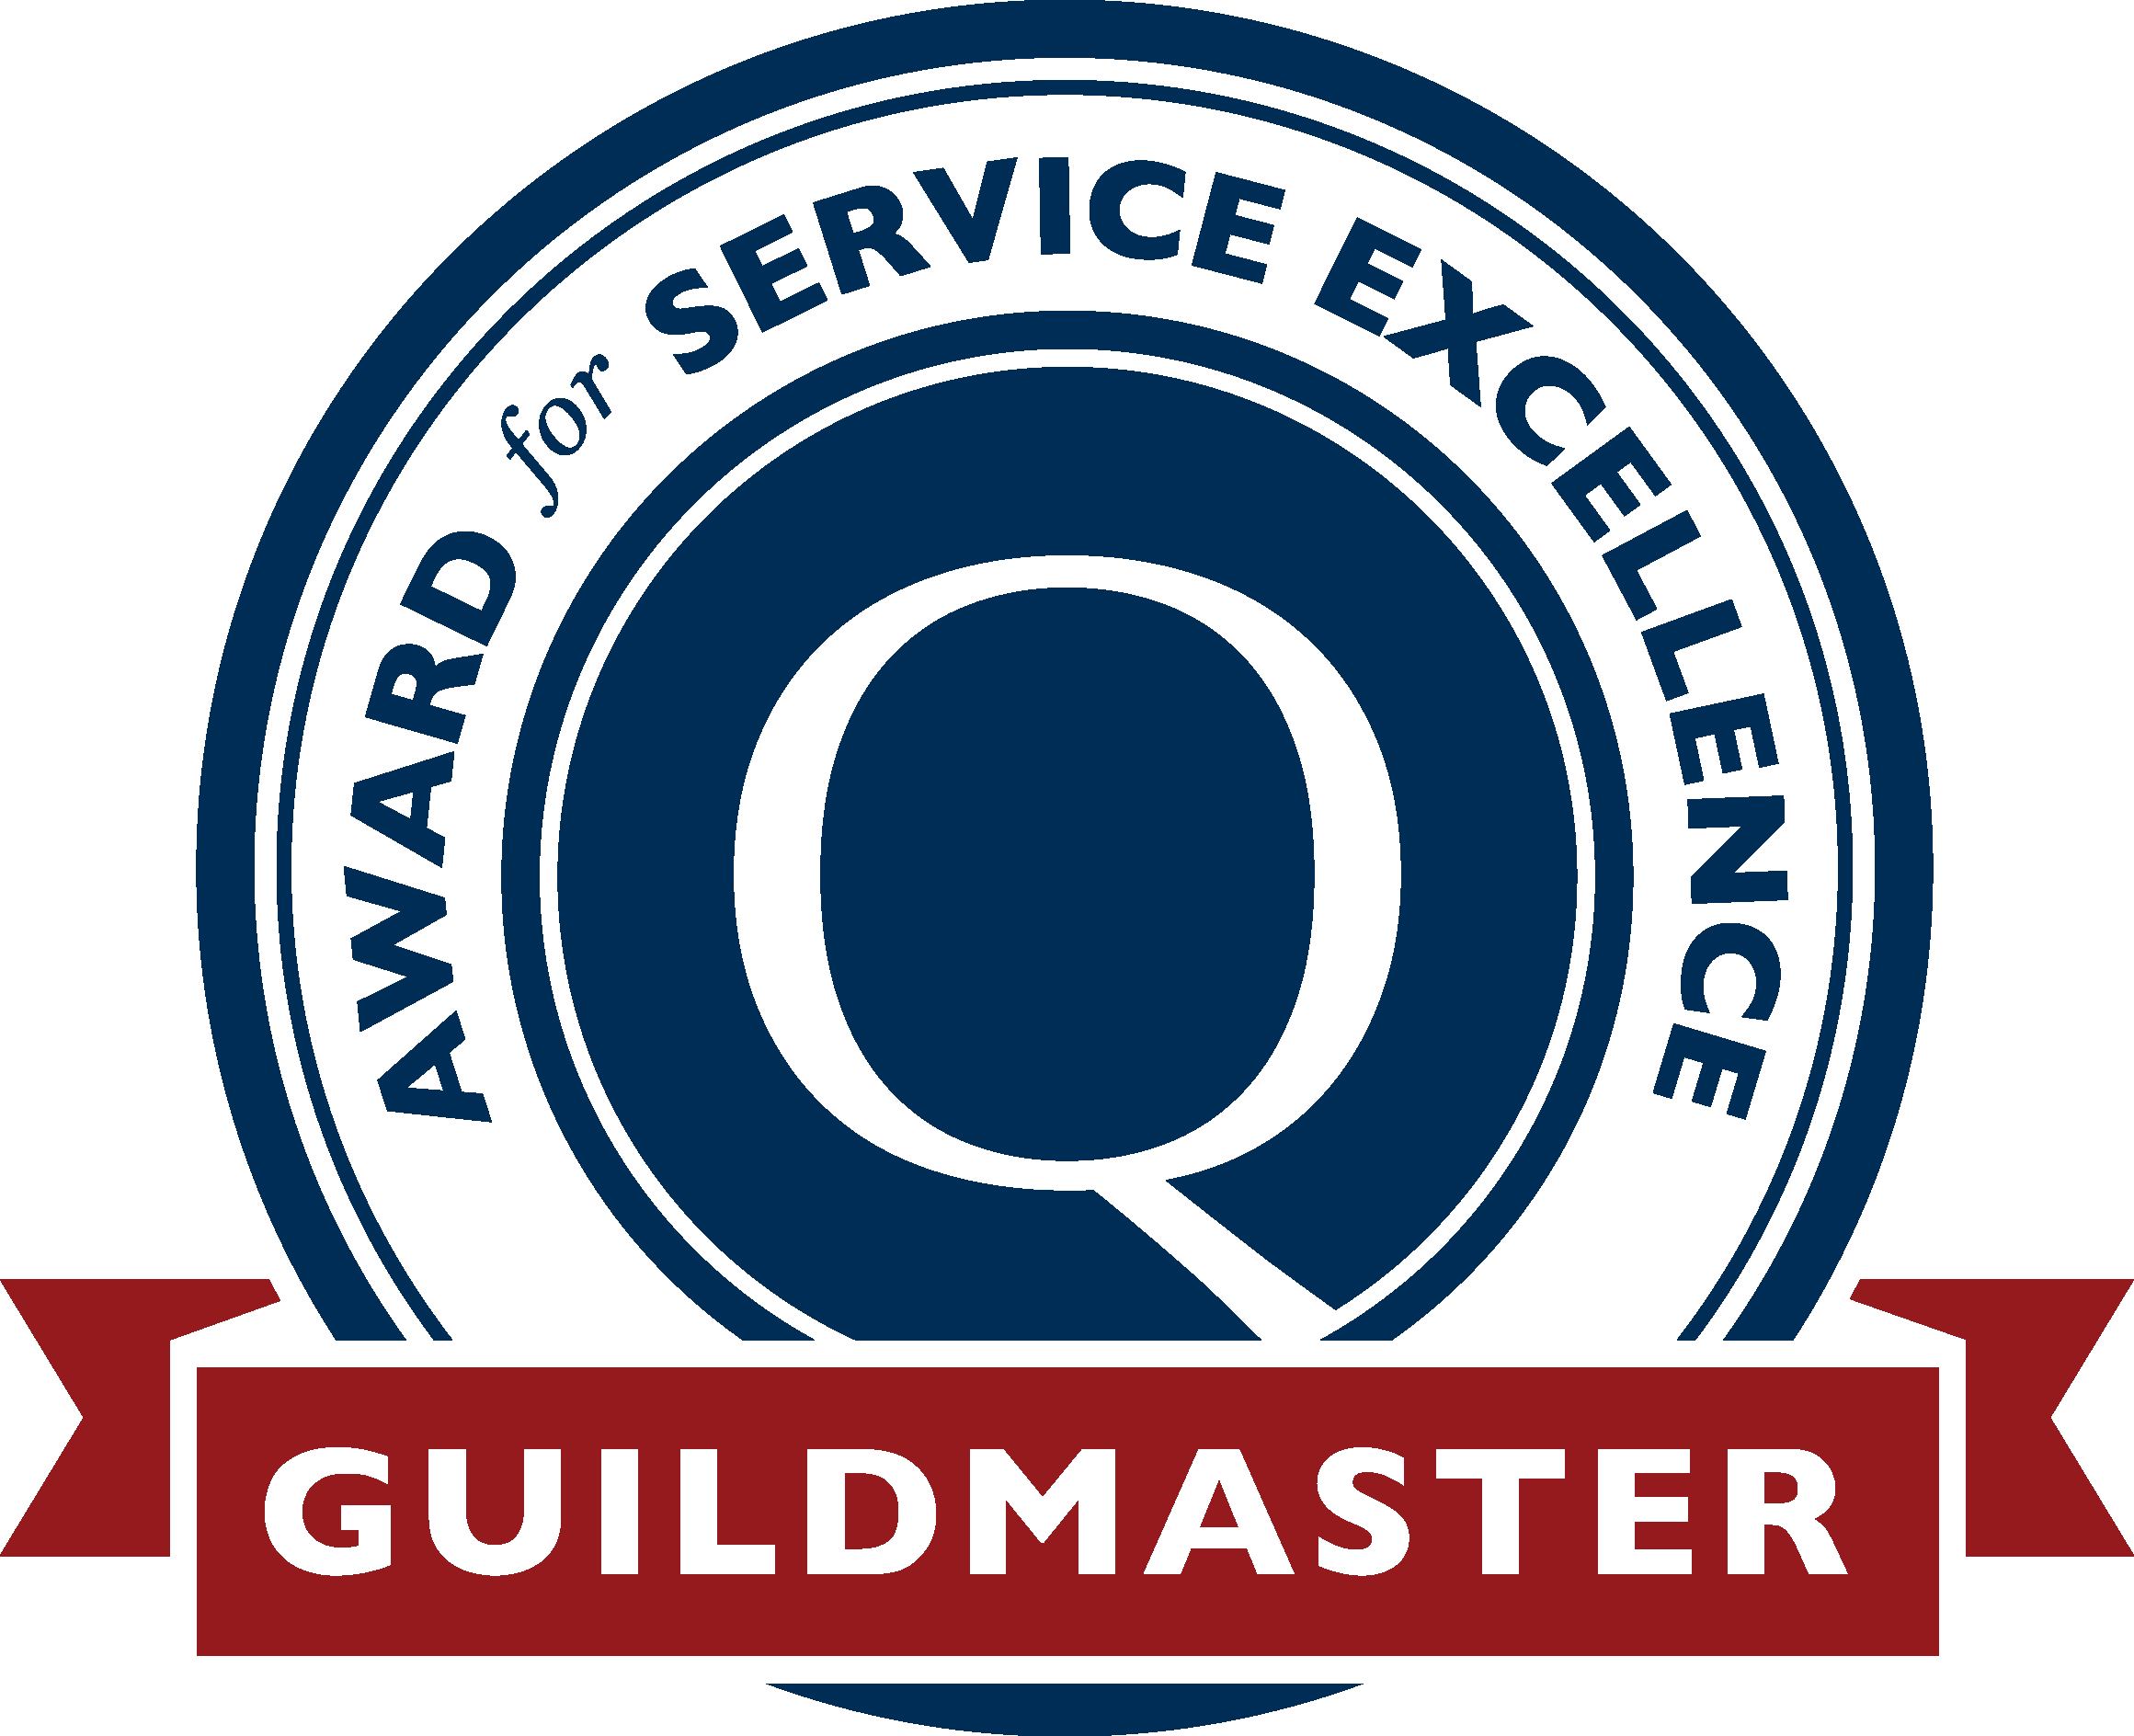 guildmaster award service excellence - Achievements